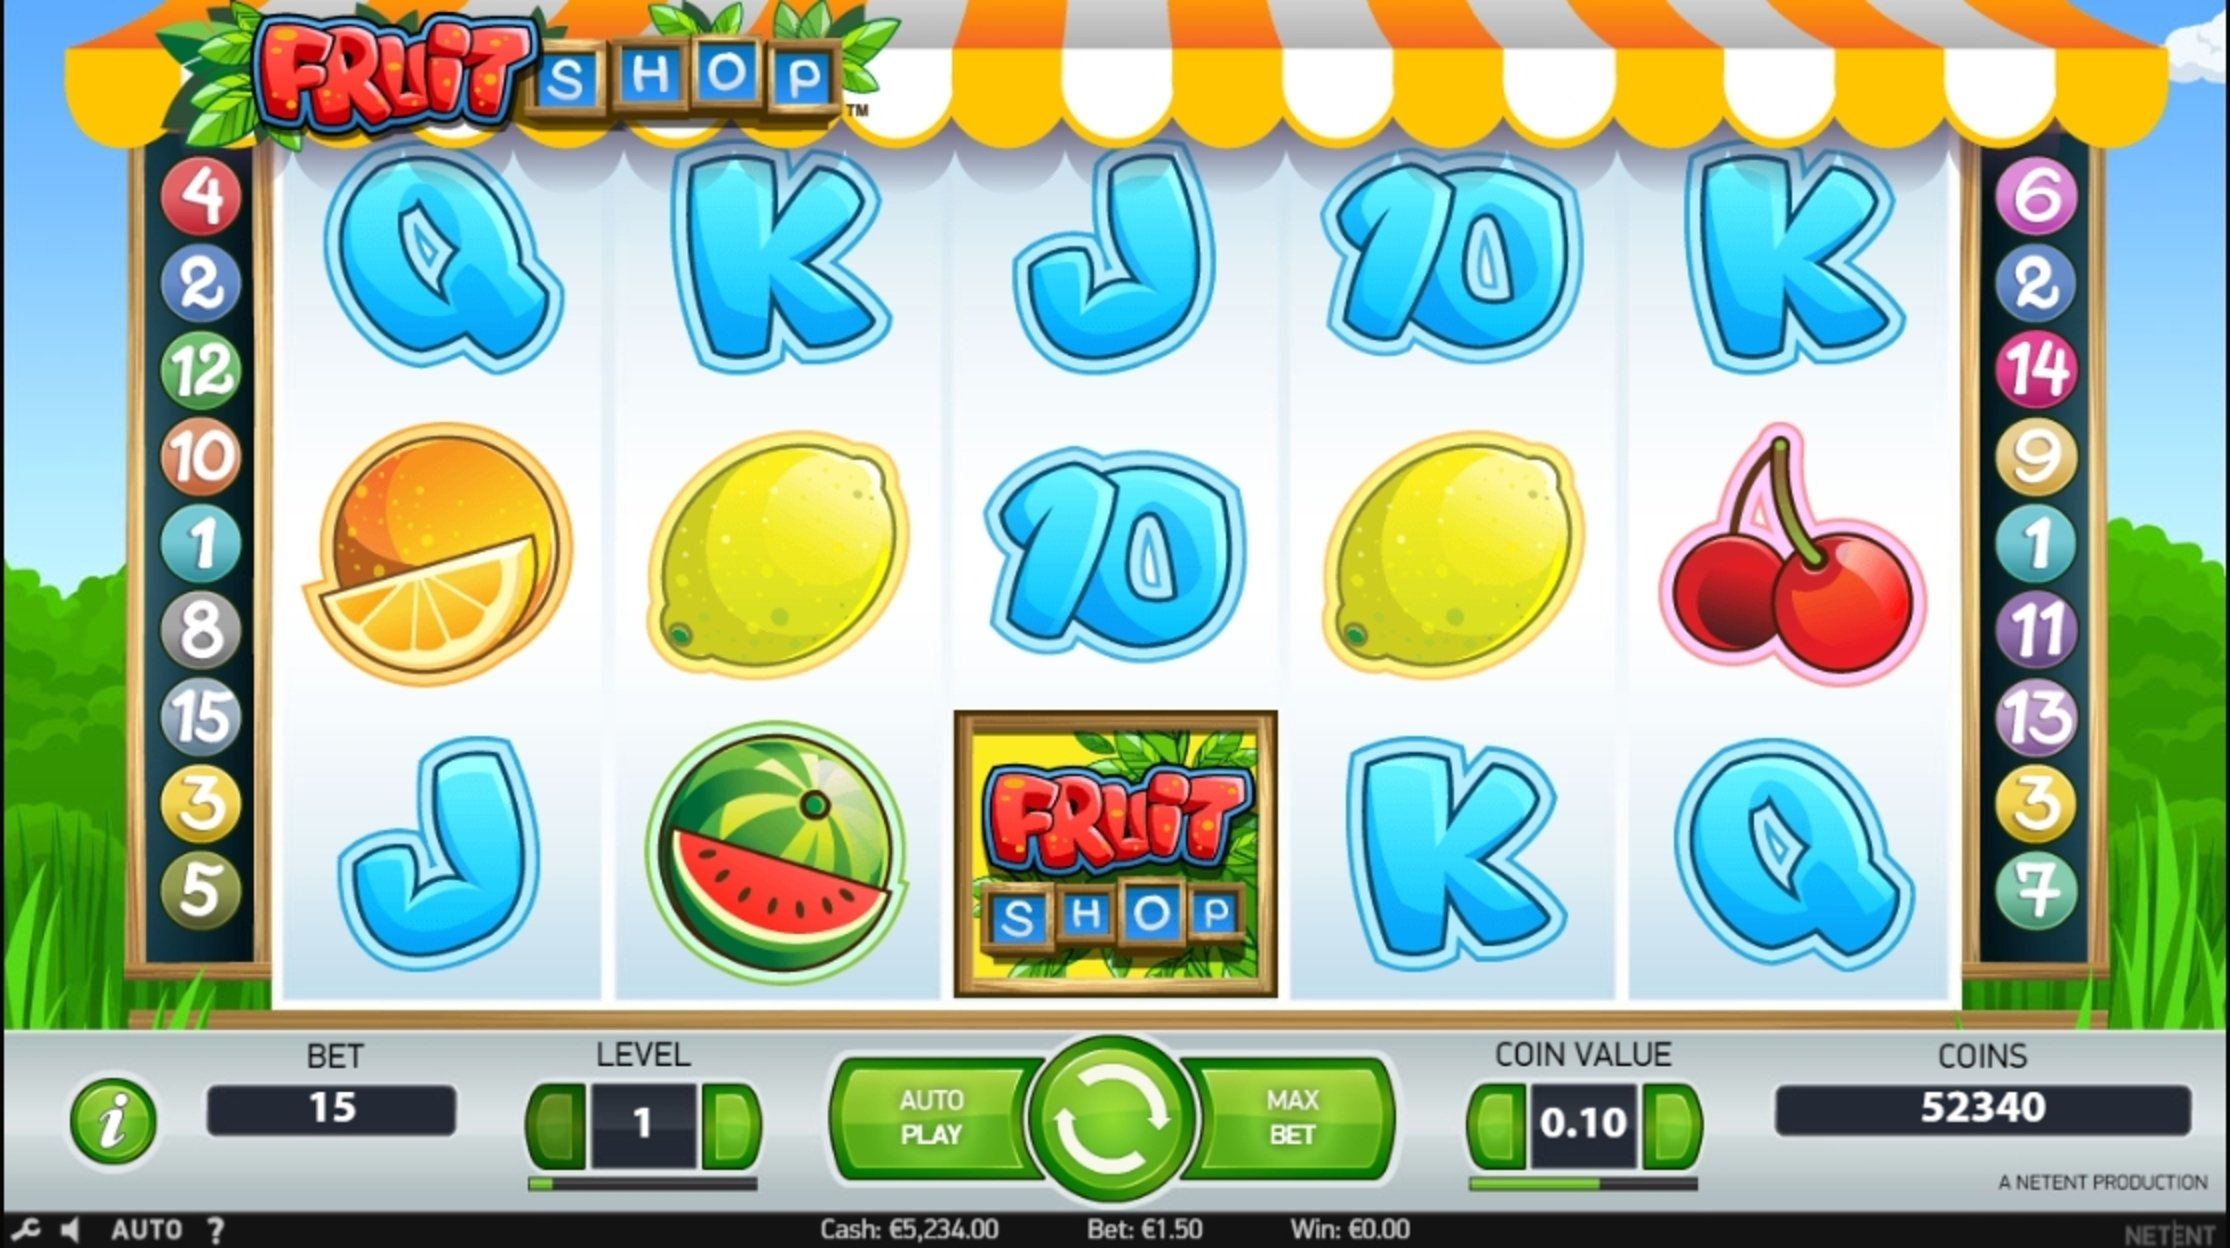 Reels in Fruit Shop (NetEnt) Slot Game by NetEnt